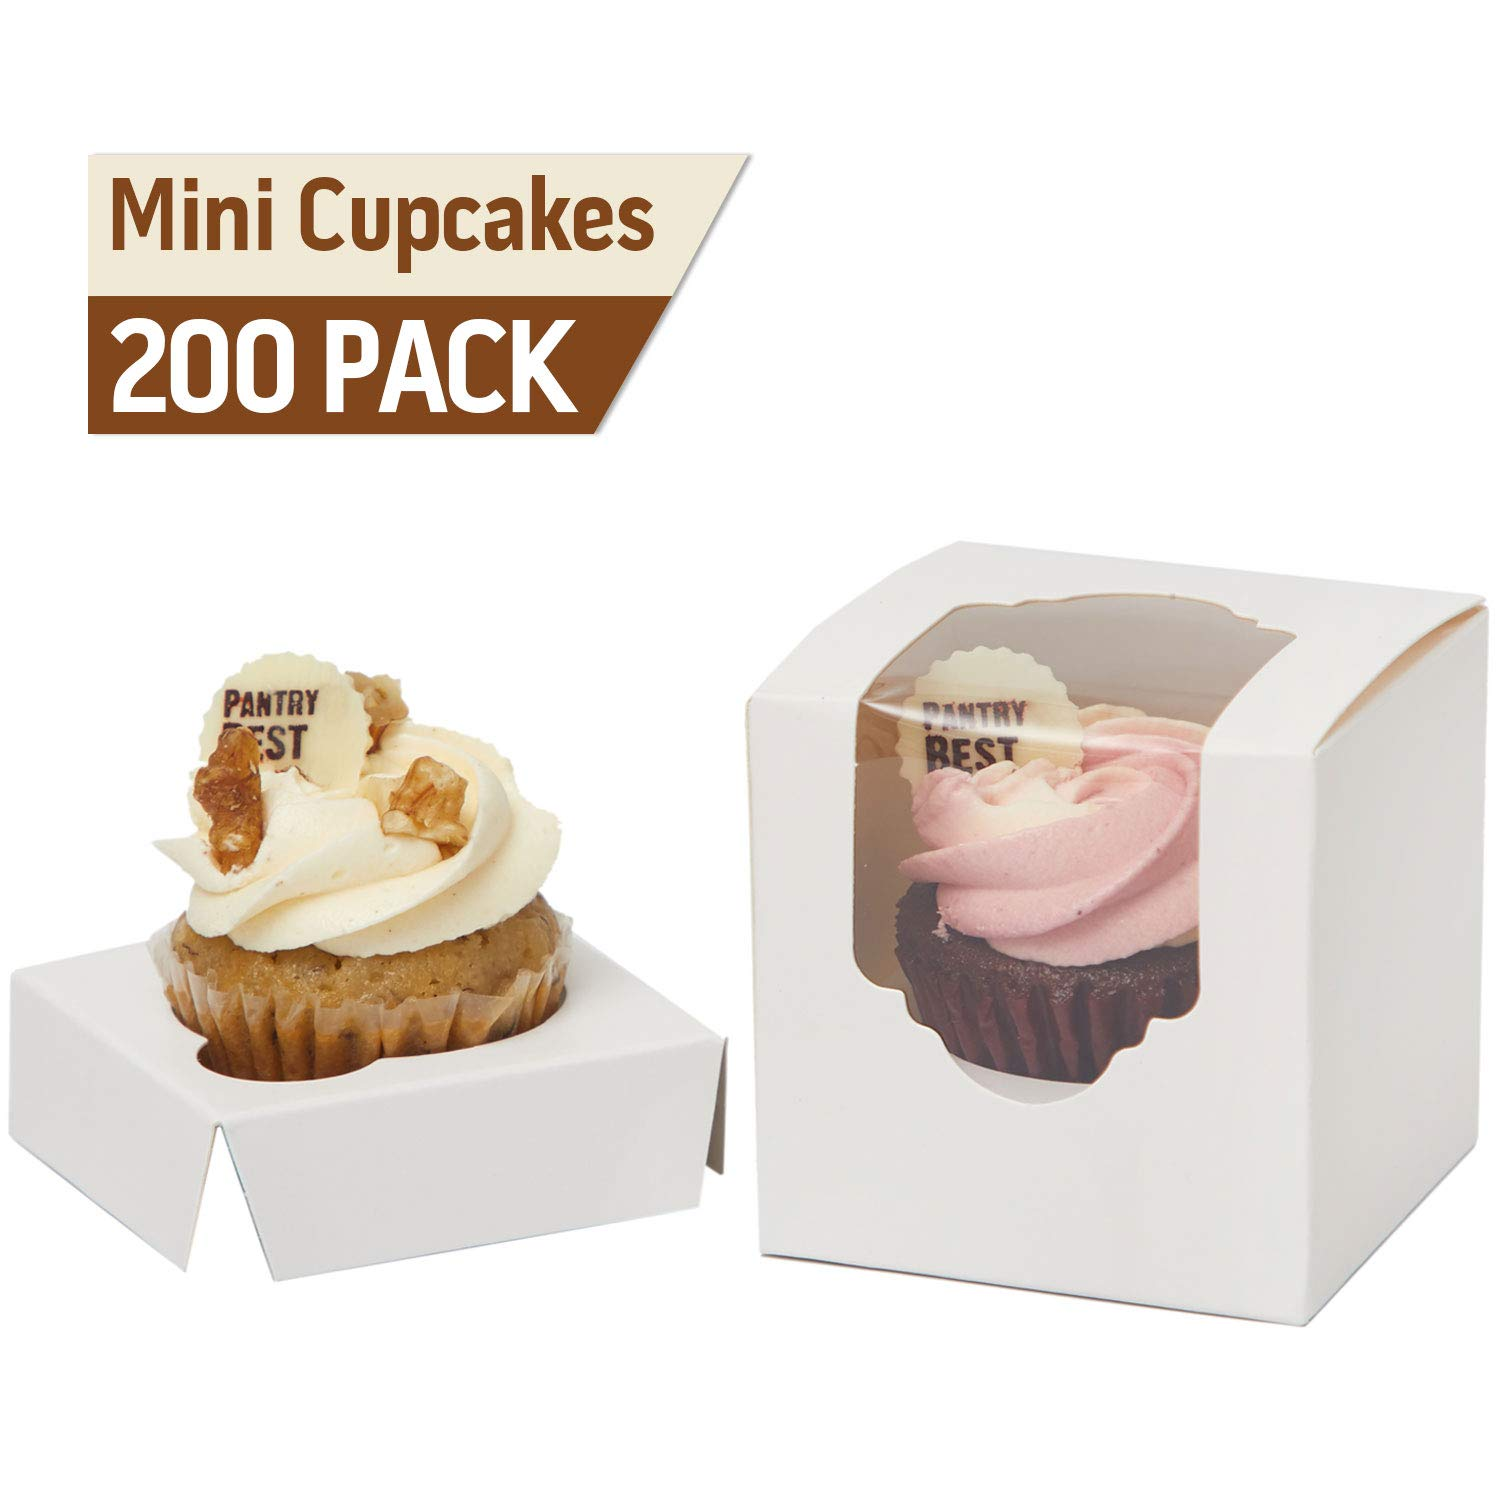 Yotruth Individual Mini Cupcake Box White 2.5'' x 2.5'' x 2.5'' Wholesale with Window and Insert 200 Pack